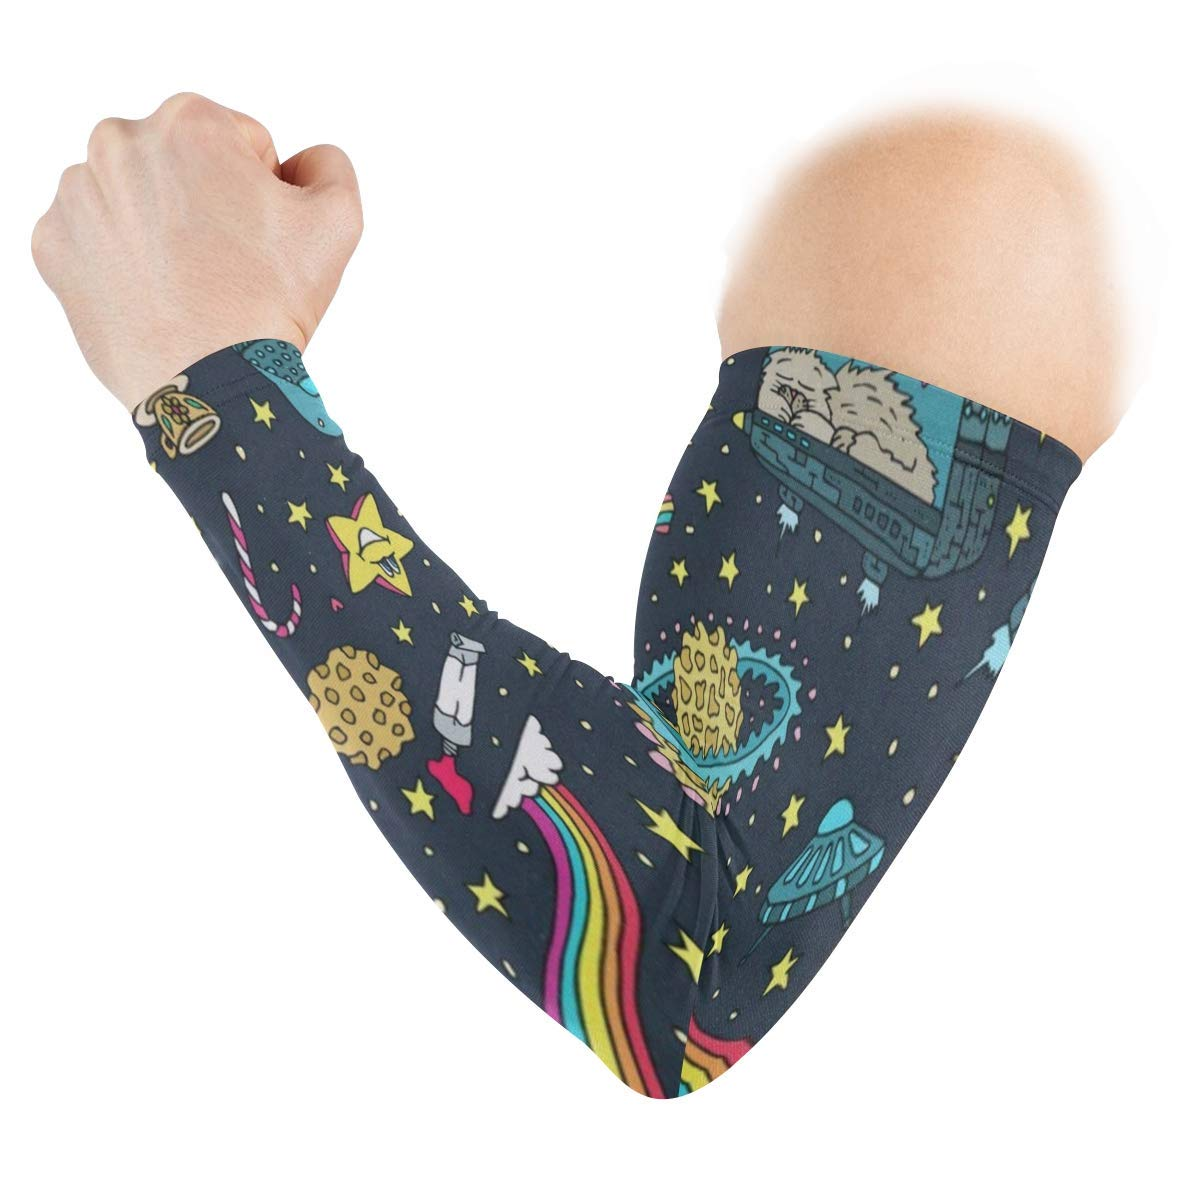 Arm Sleeves Cute American Astraurants Galaxy Space Mens Sun UV Protection Sleeves Arm Warmers Cool Long Set Covers White